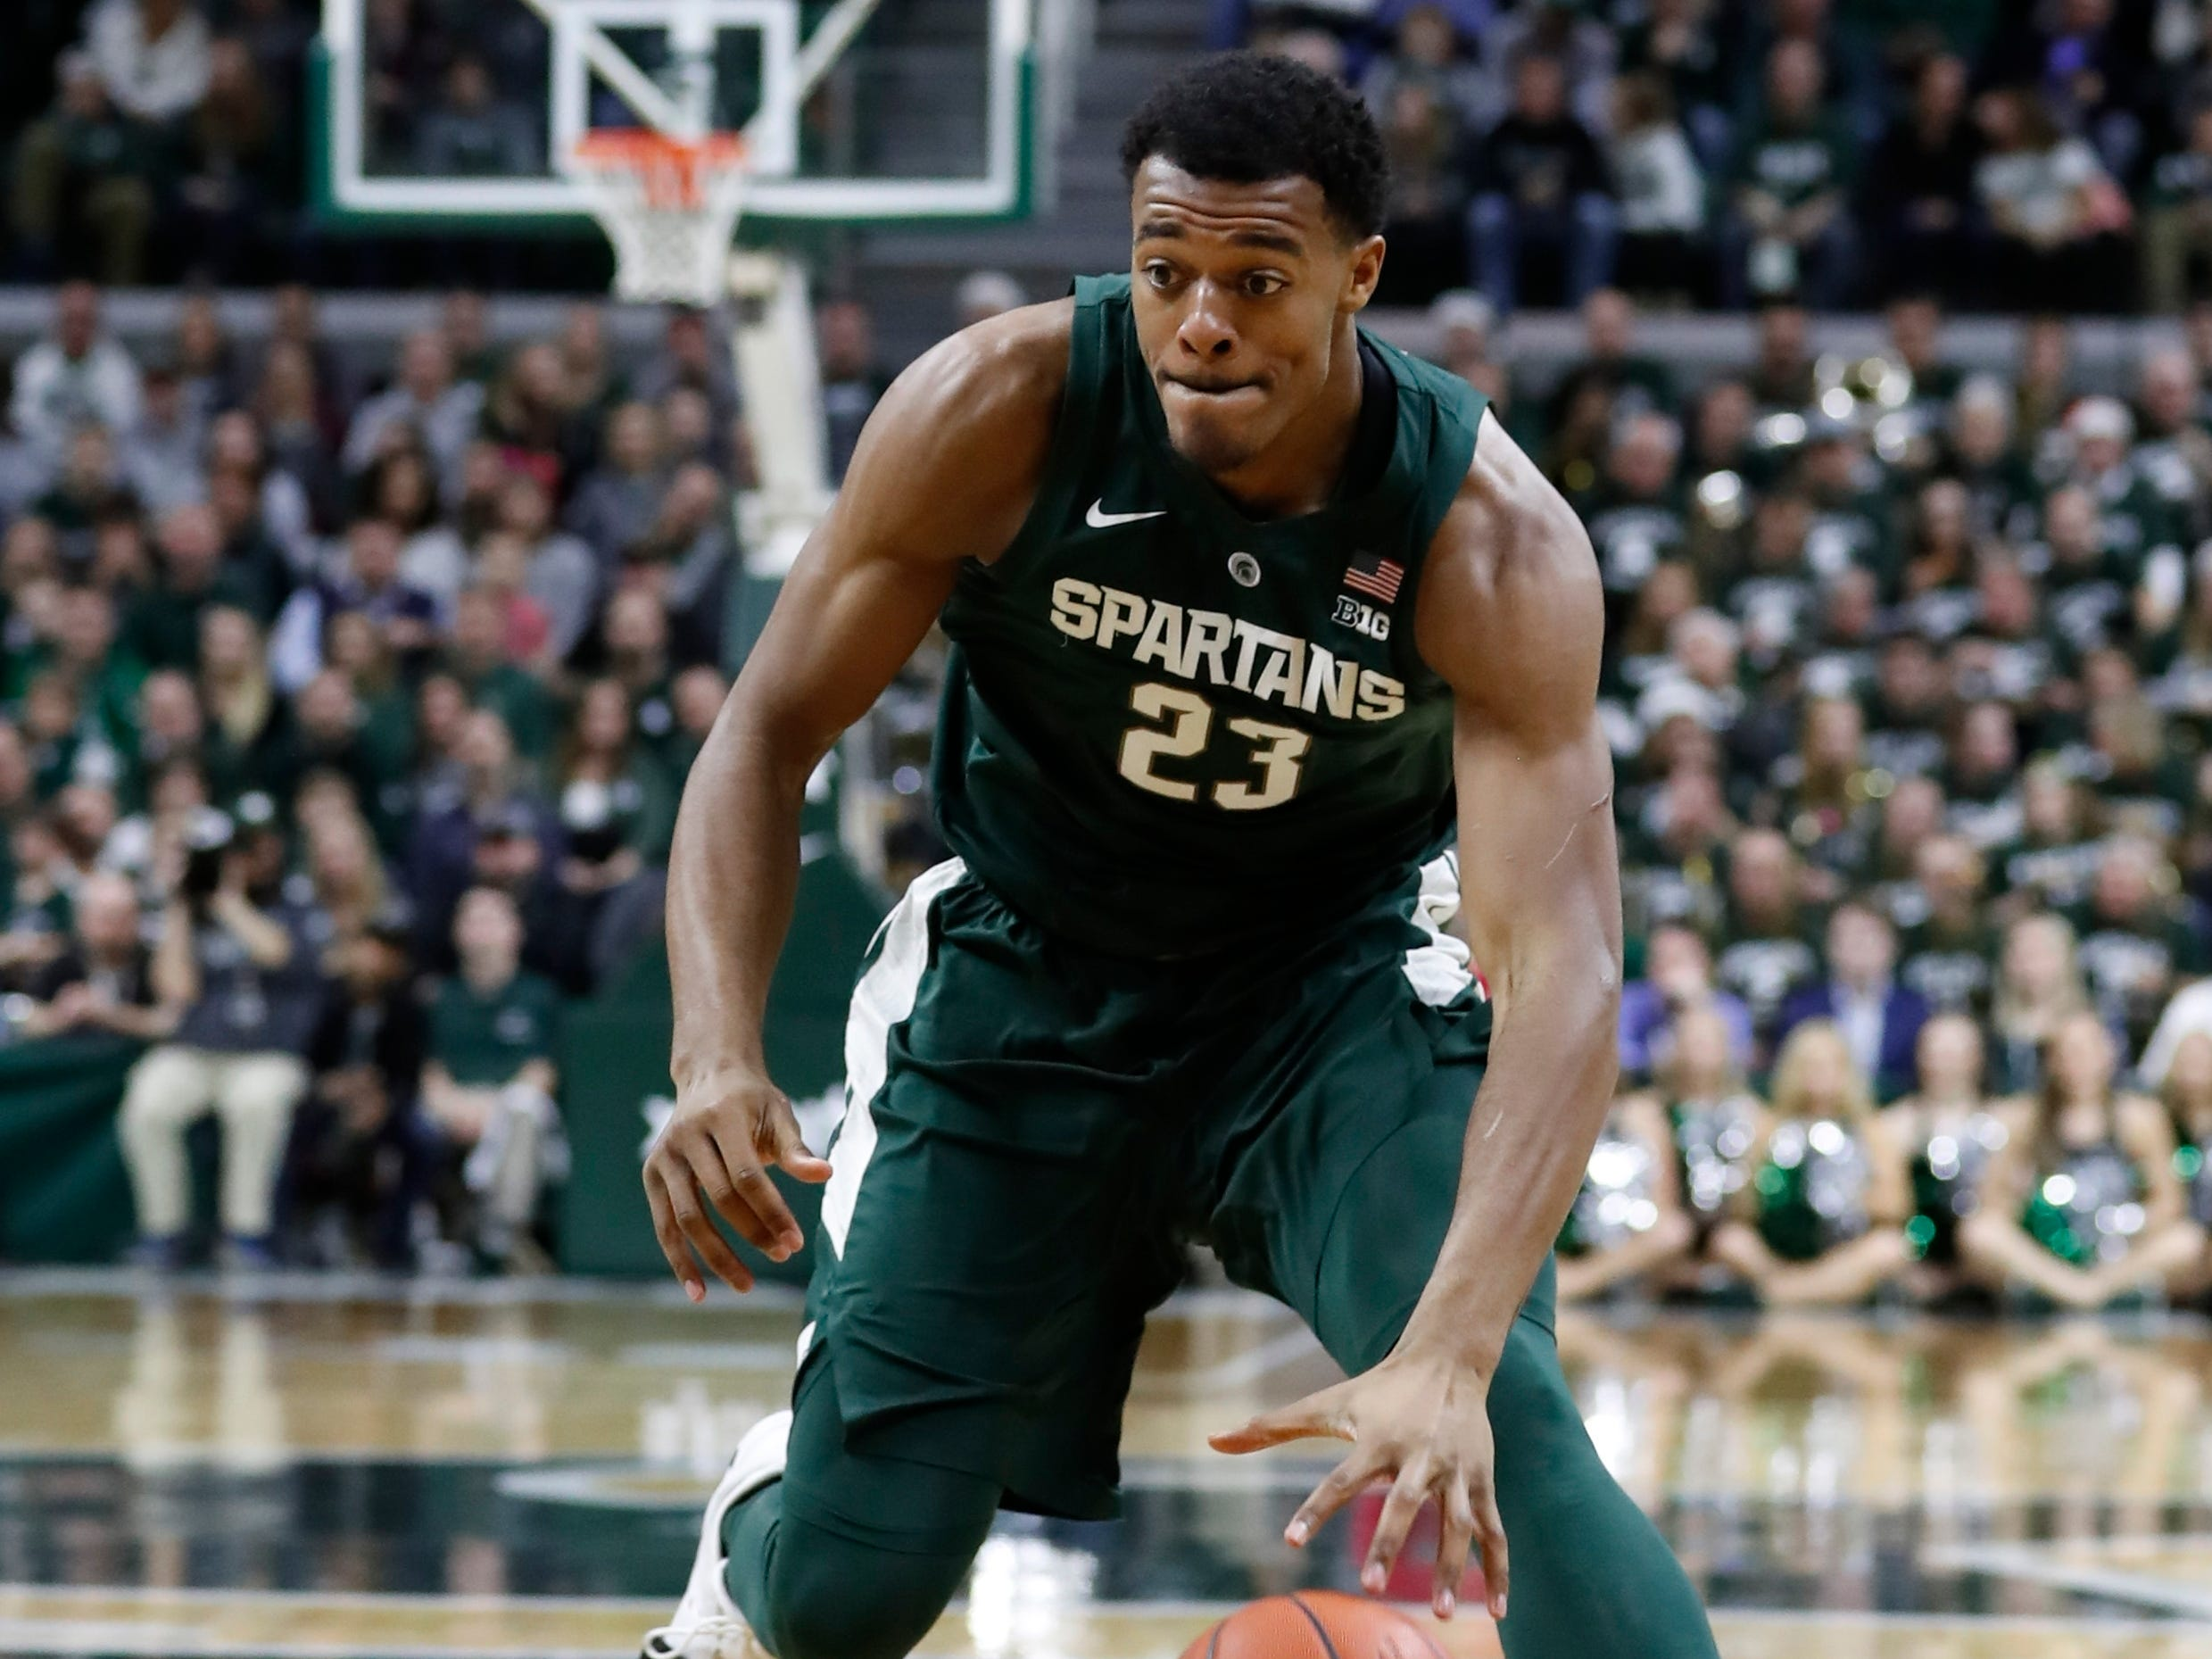 Michigan State forward Xavier Tillman brings the ball up court during the second half of an NCAA college basketball game against Oakland , Friday, Dec. 21, 2018, in East Lansing, Mich.